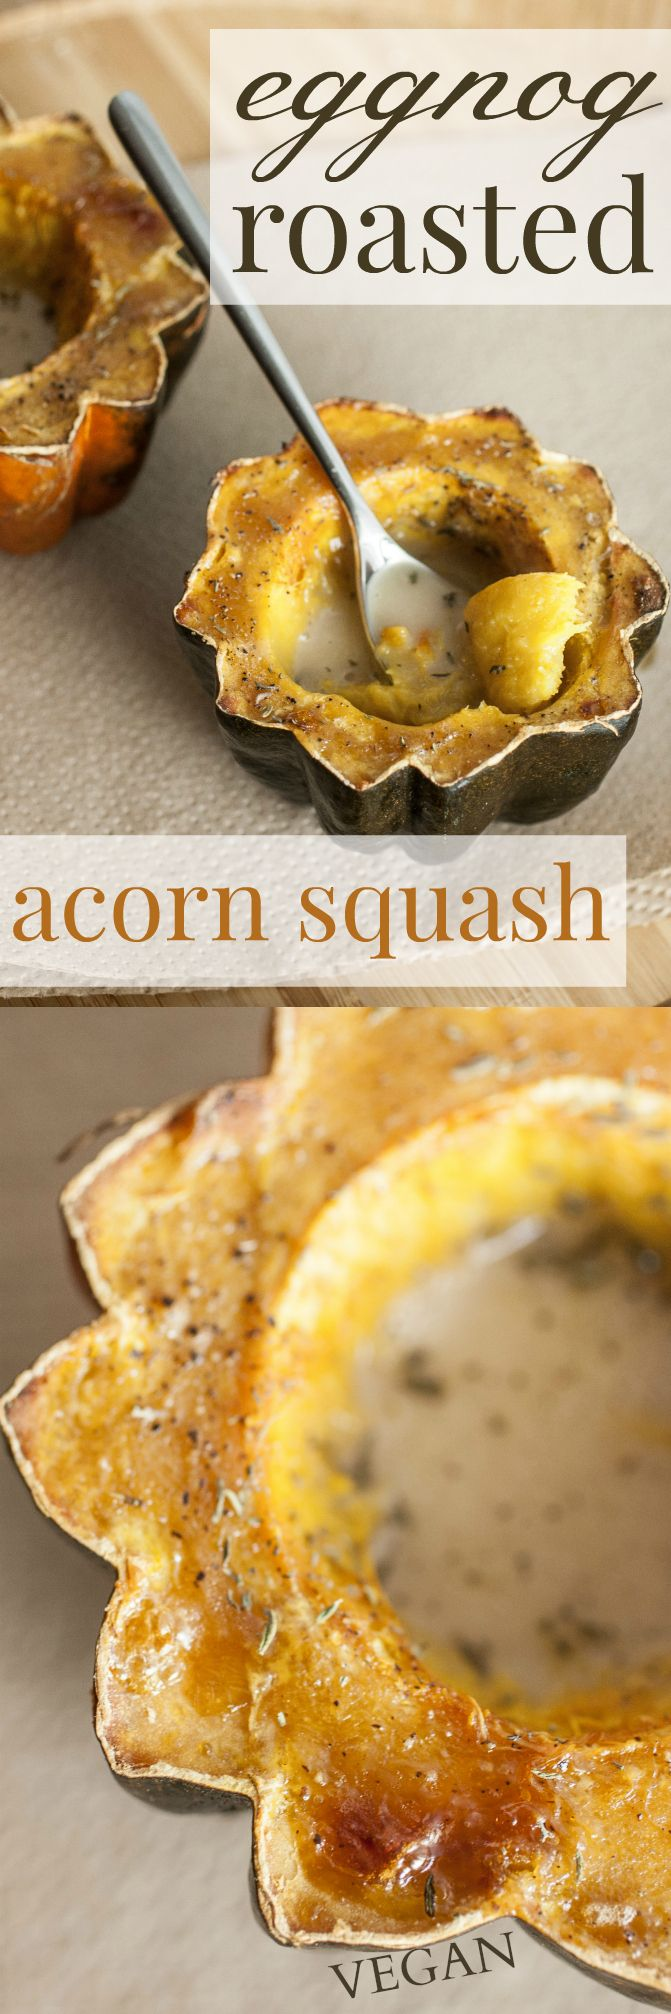 acorn squash produce on parade eggnog roasted acorn squash a delicious ...